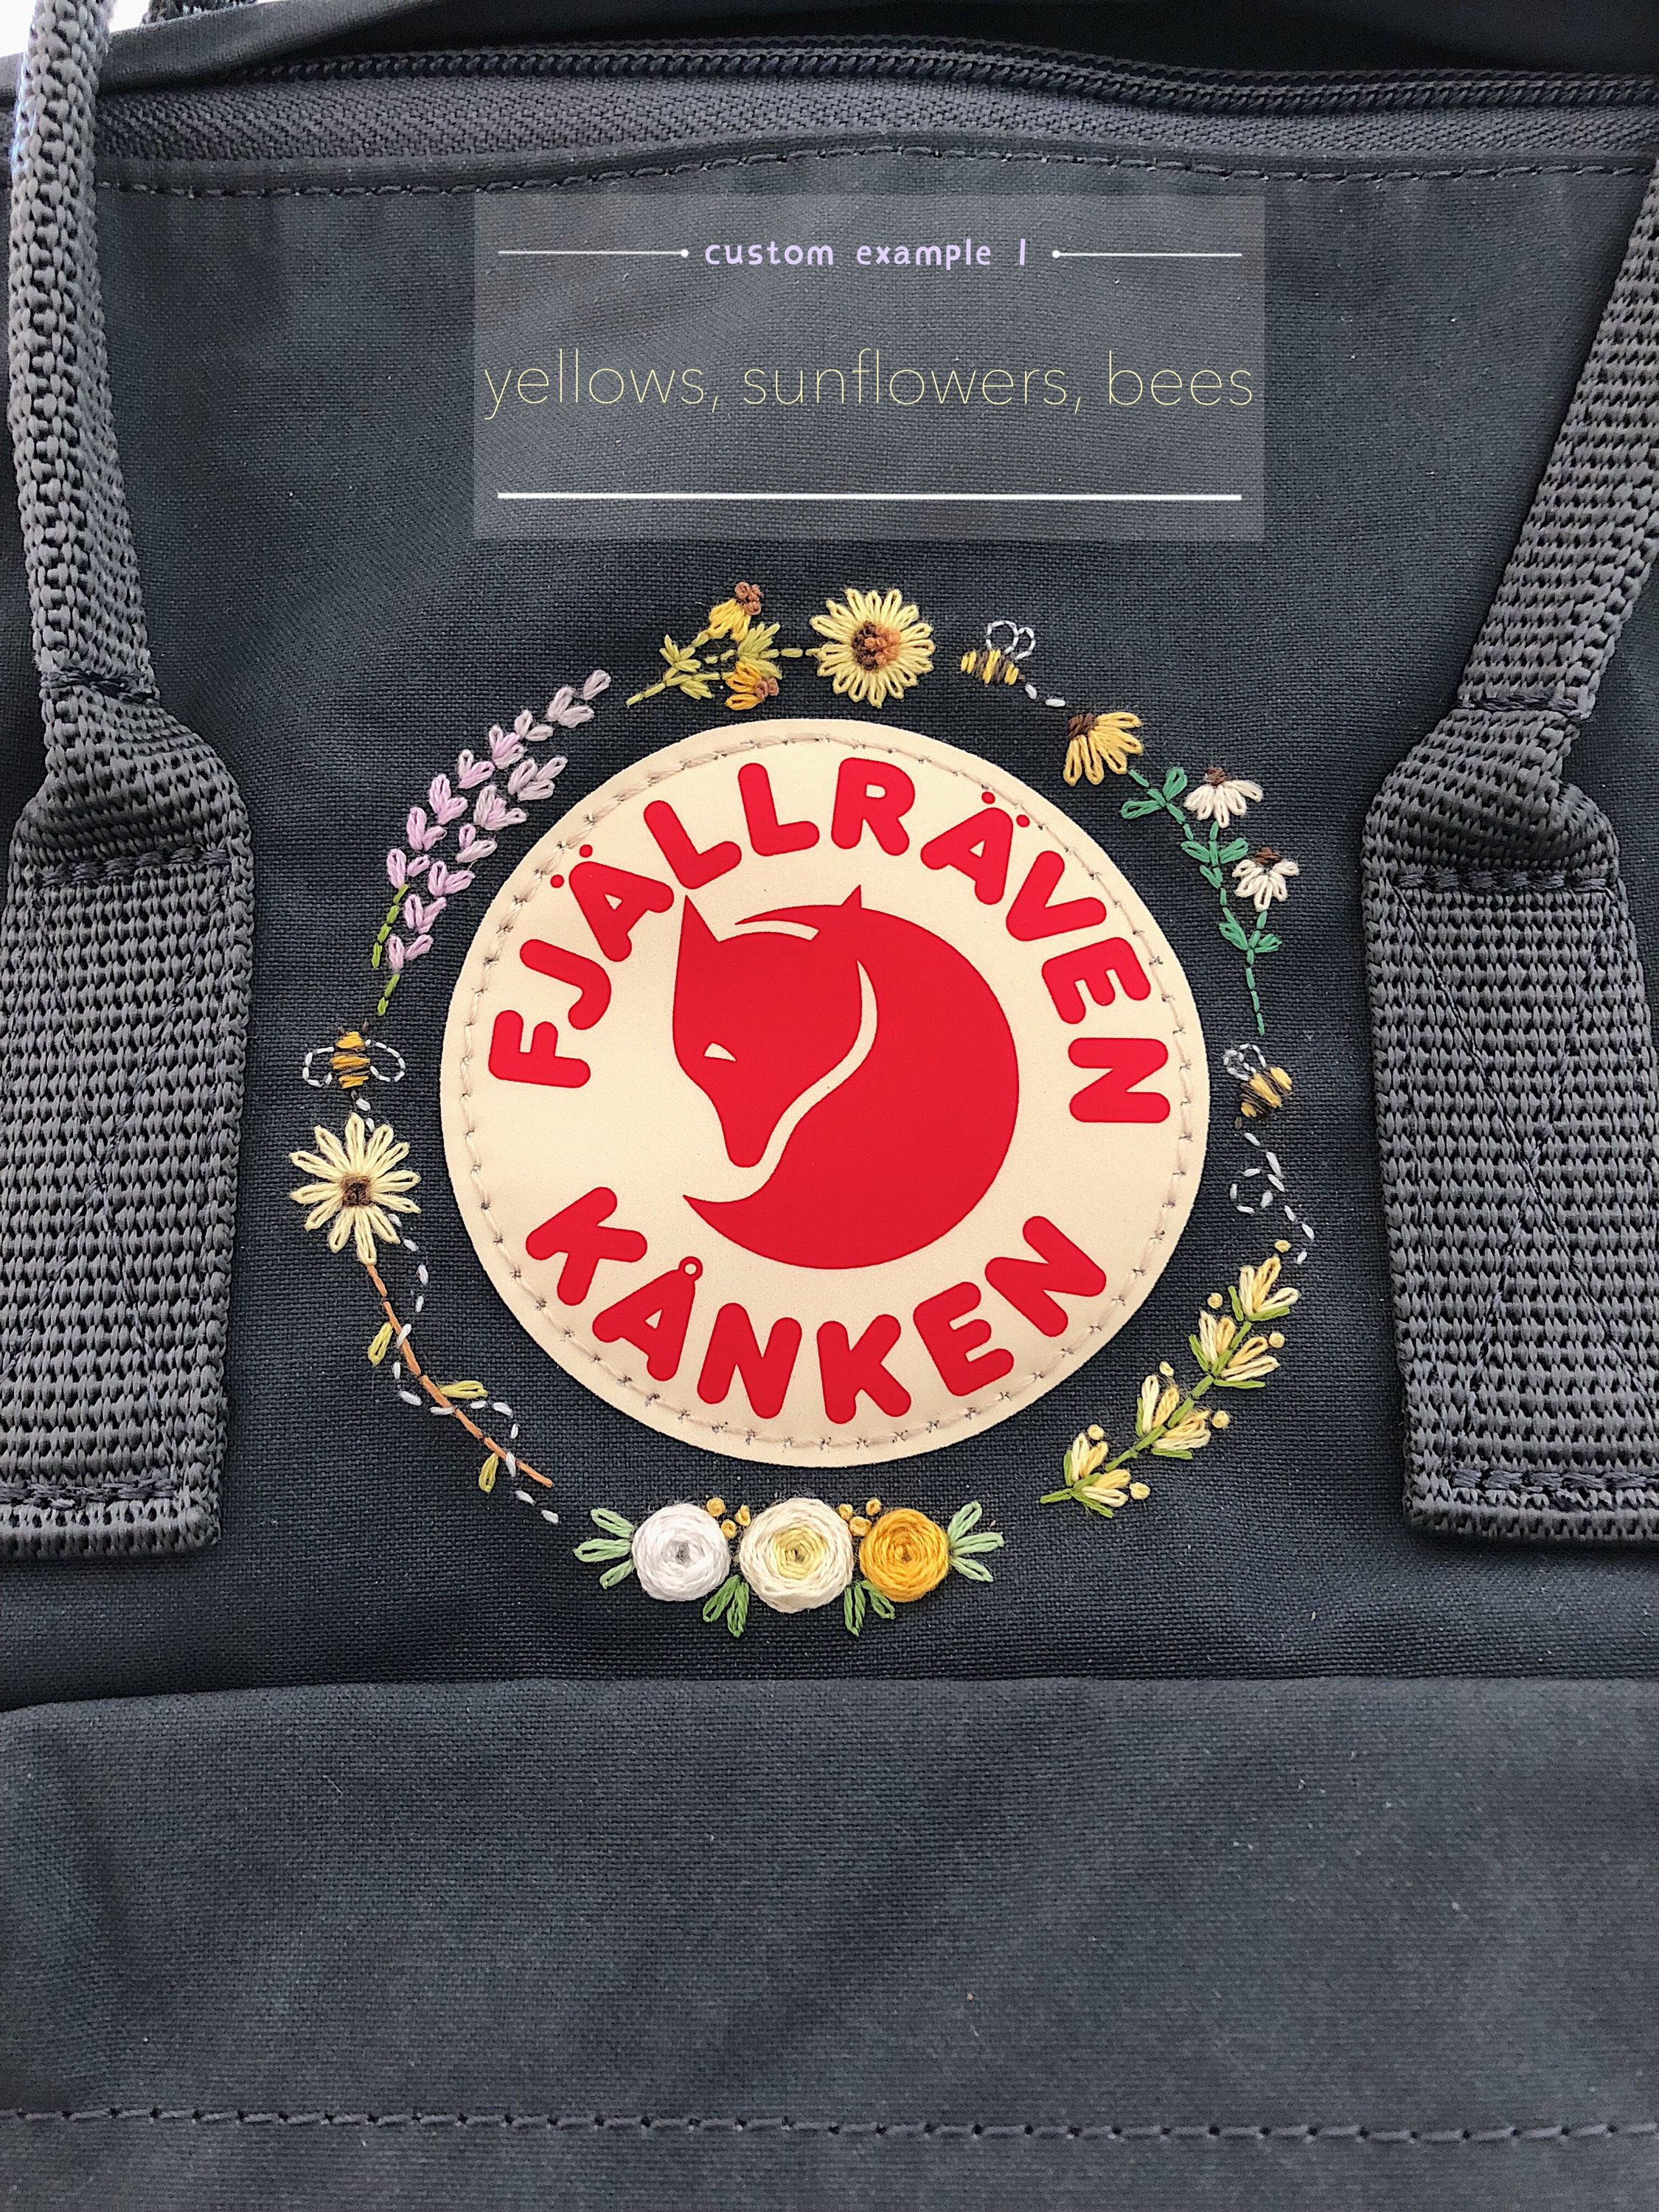 Fjallraven Kanken Embroidered Backpack, Customizable Kanken, backpack embroidery, floral embroidered backpack, Embroidered Kanken